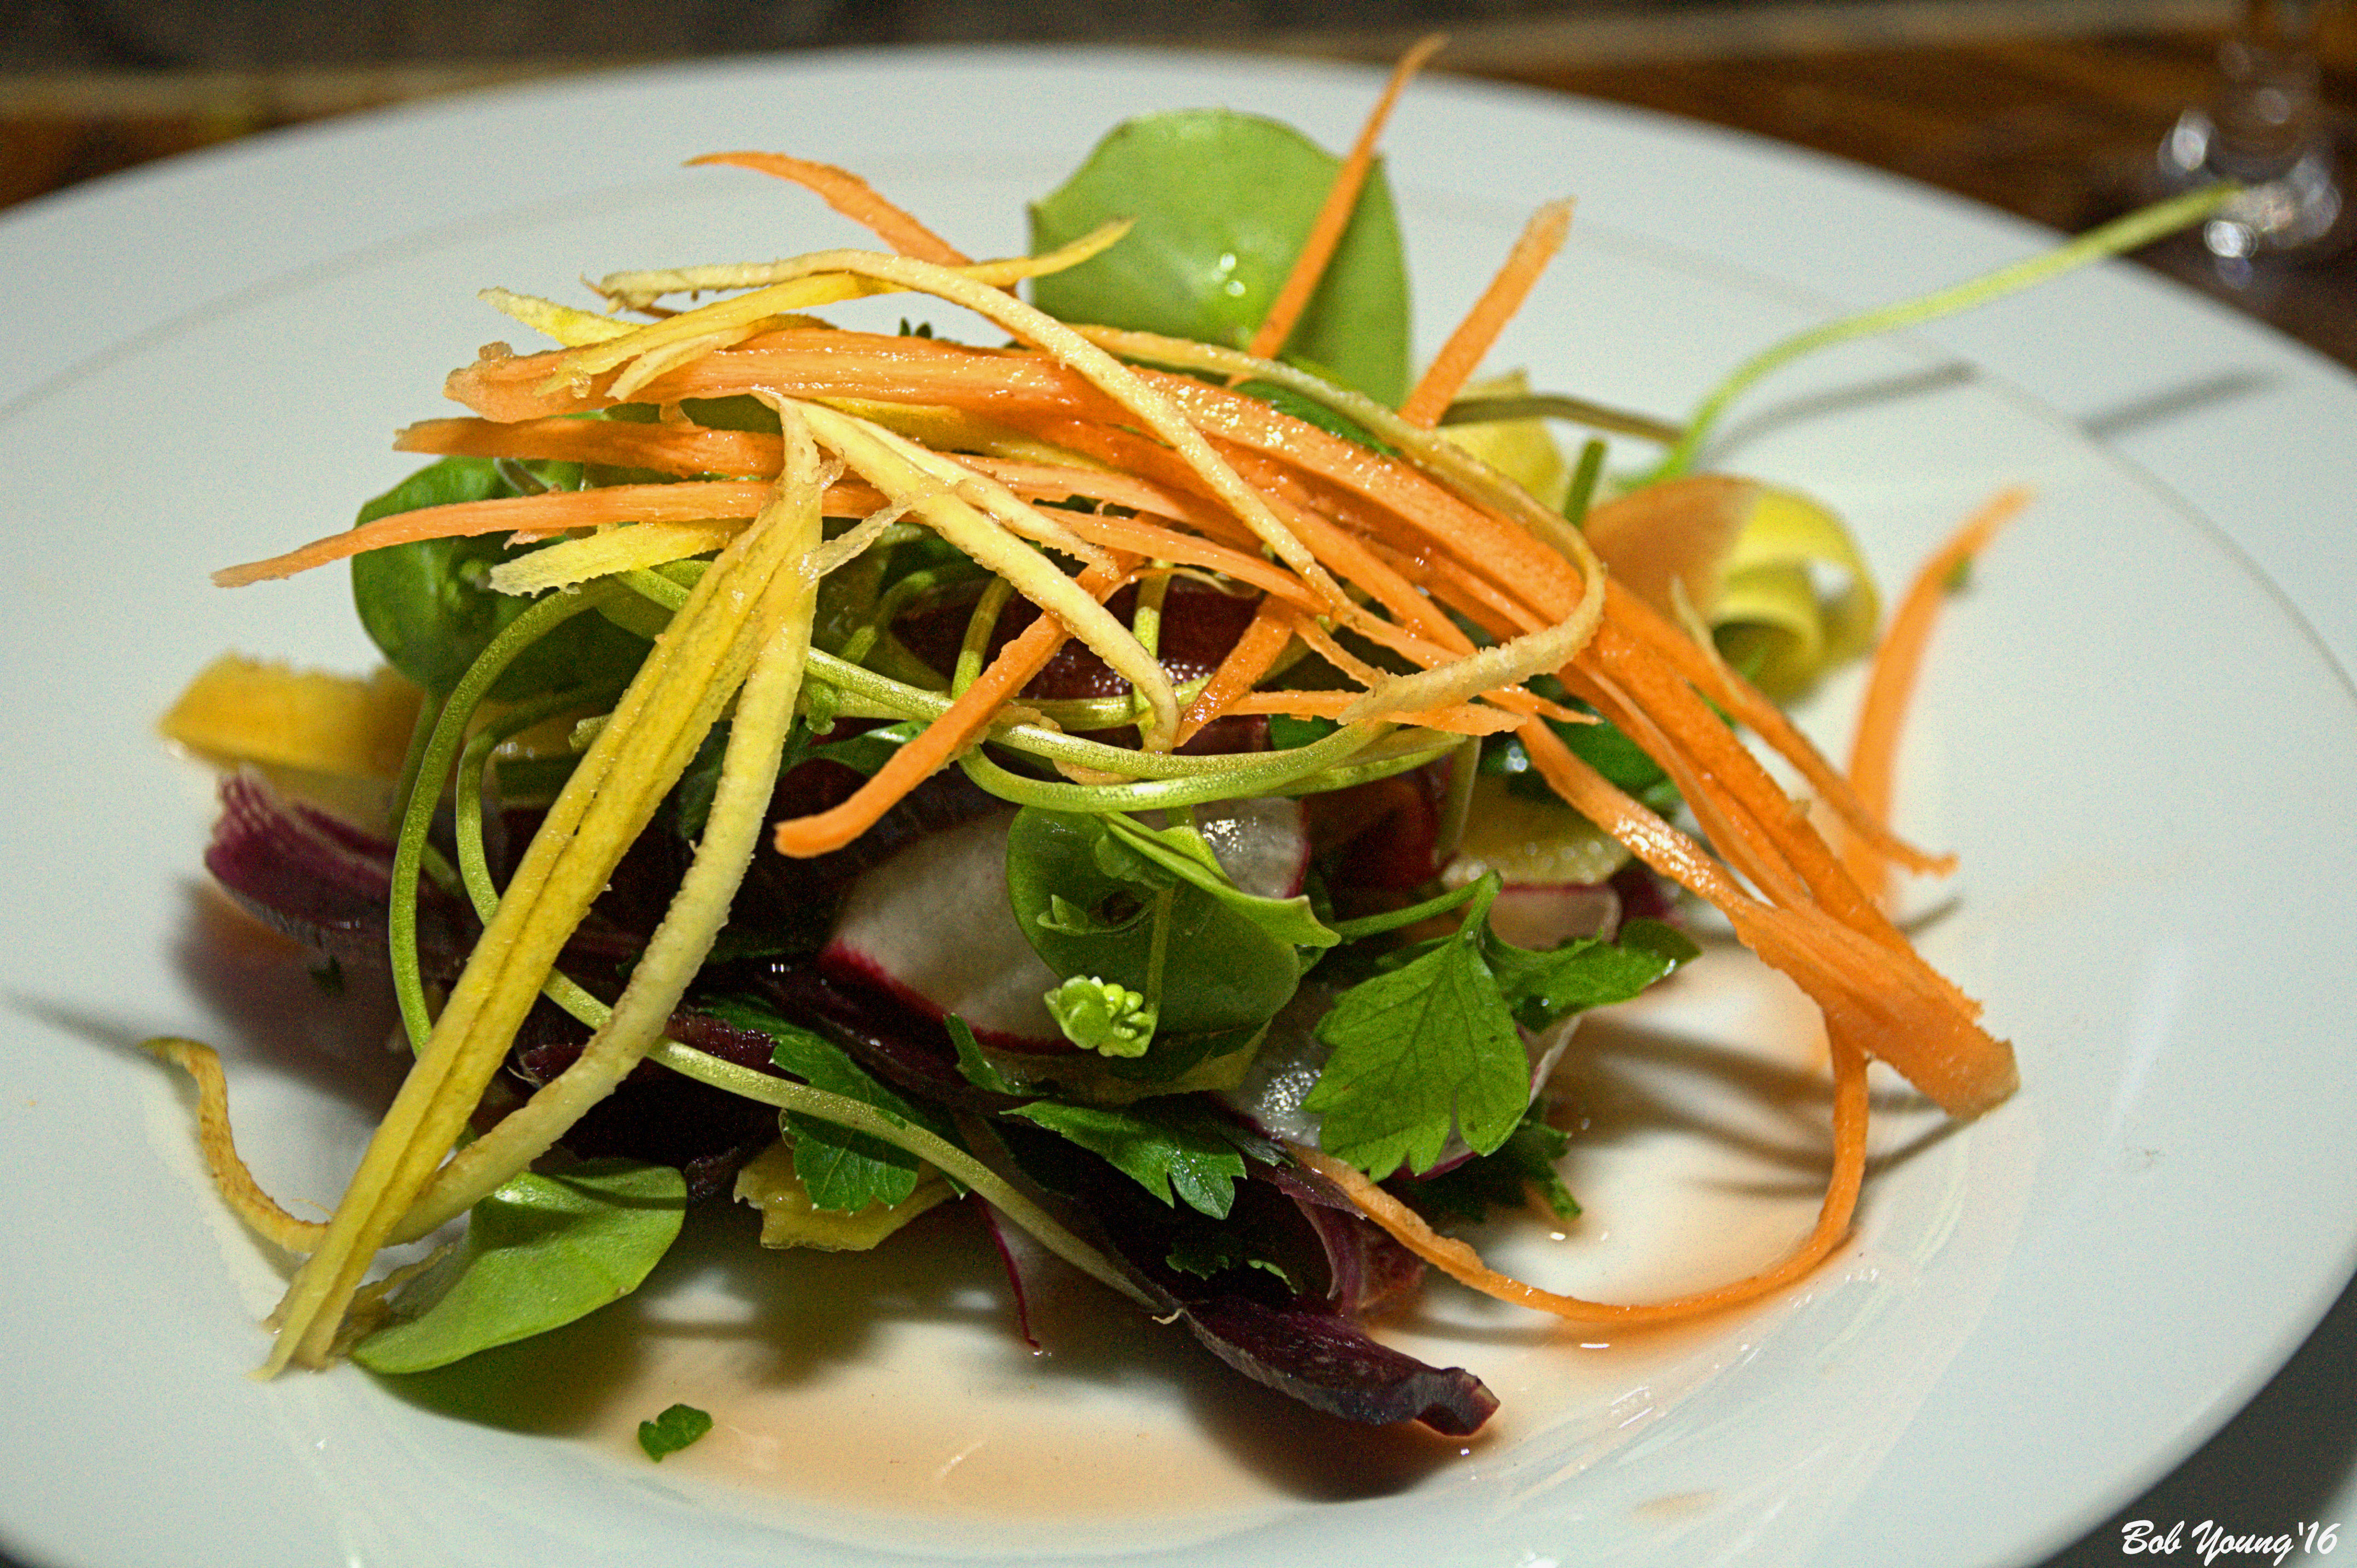 Parsley Salad with Shaved Radish and Fresh Miners Lettuce.